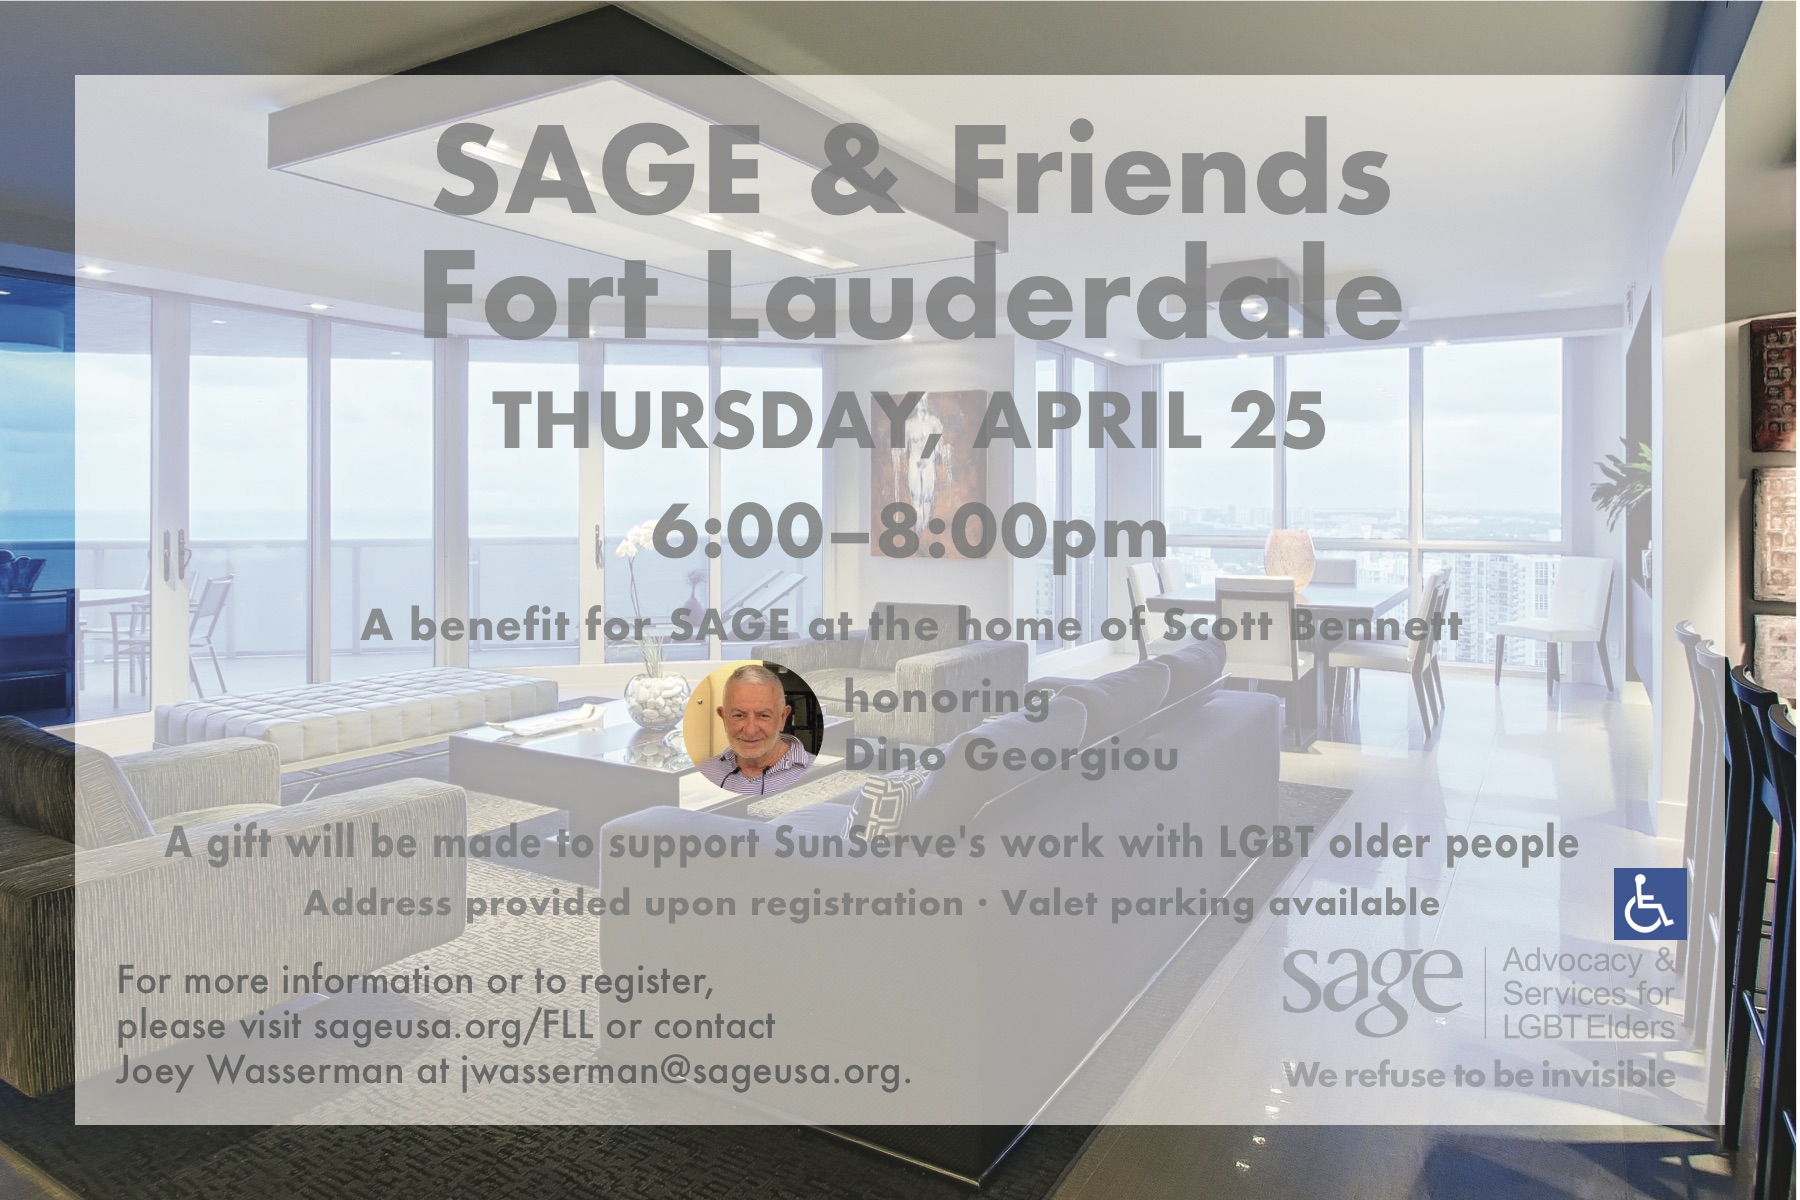 SAGE and Friends Ft. Lauderdale invite